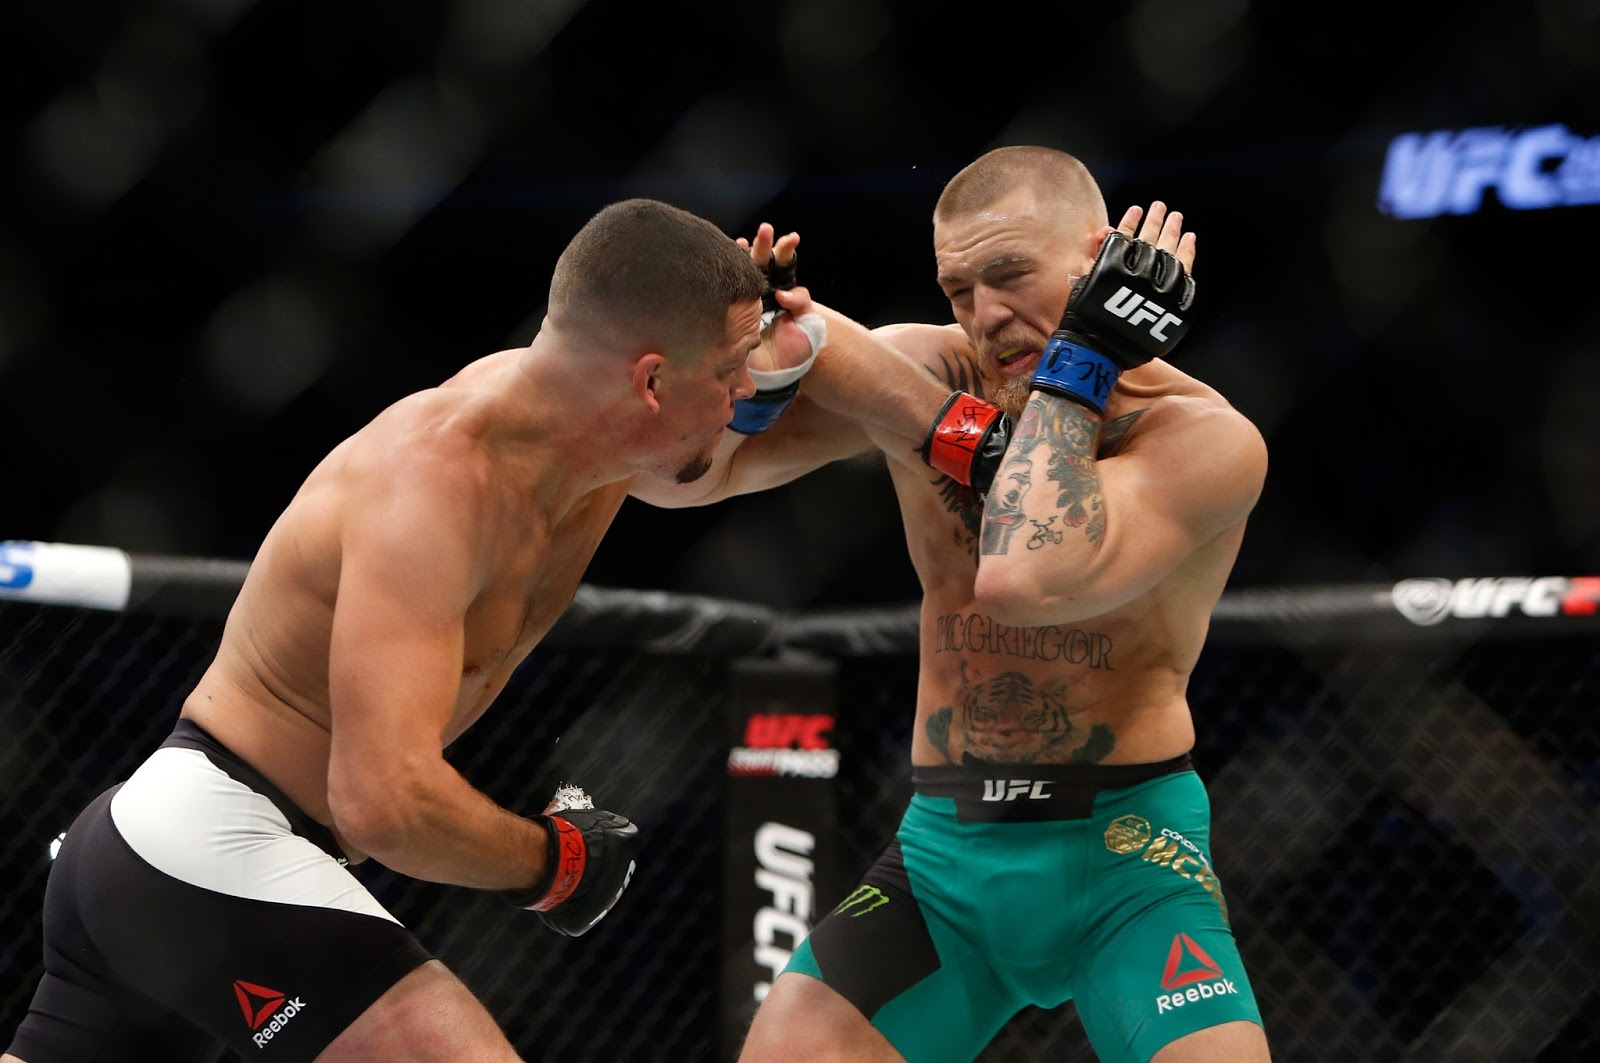 CONOR MCGREGOR VS. NATE DIAZ 8